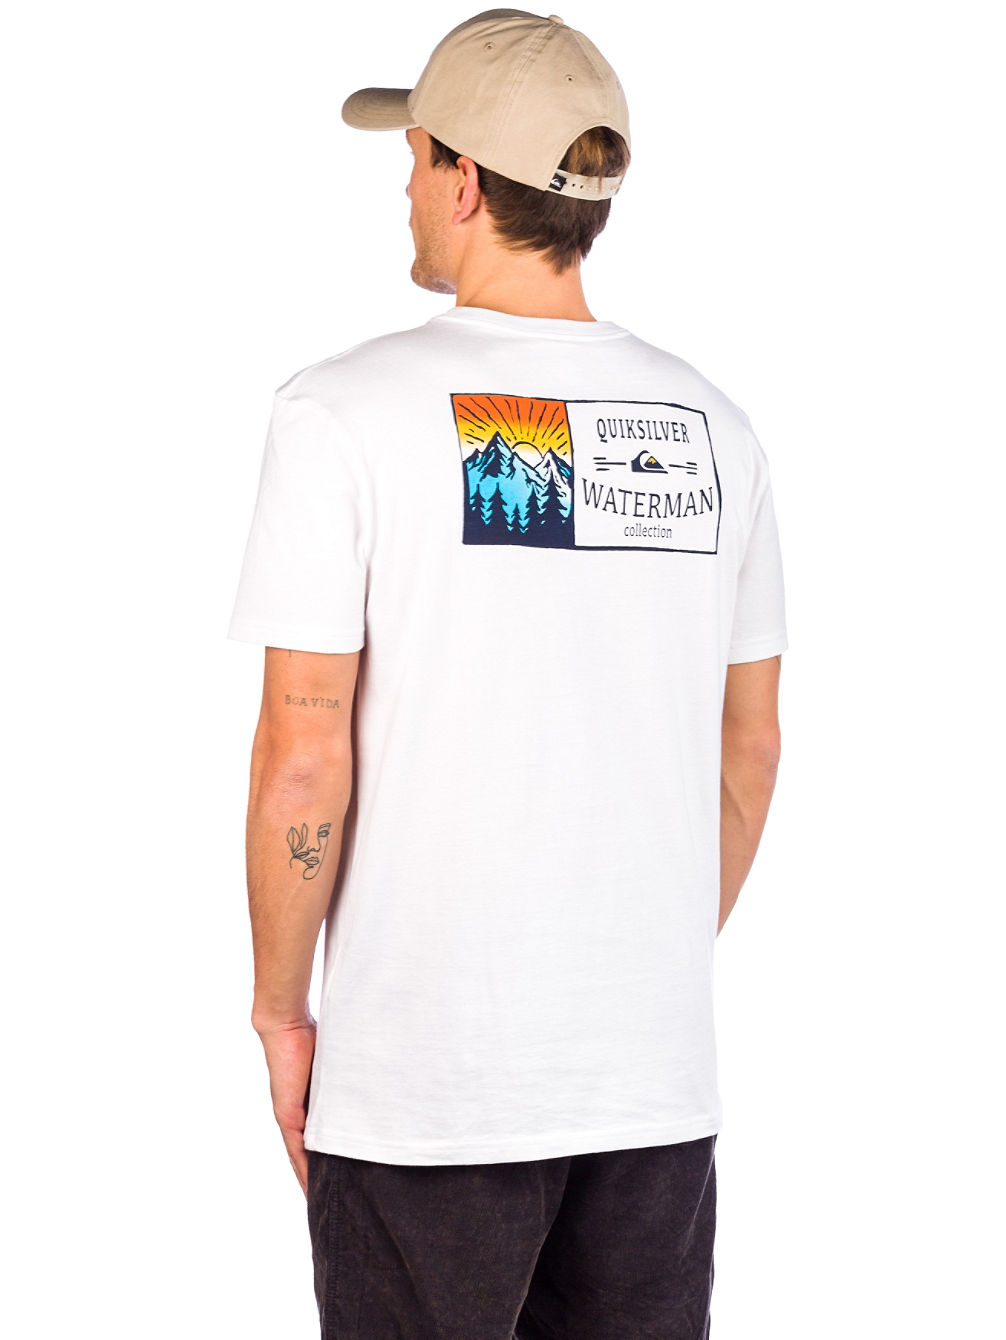 The High Road T-shirt